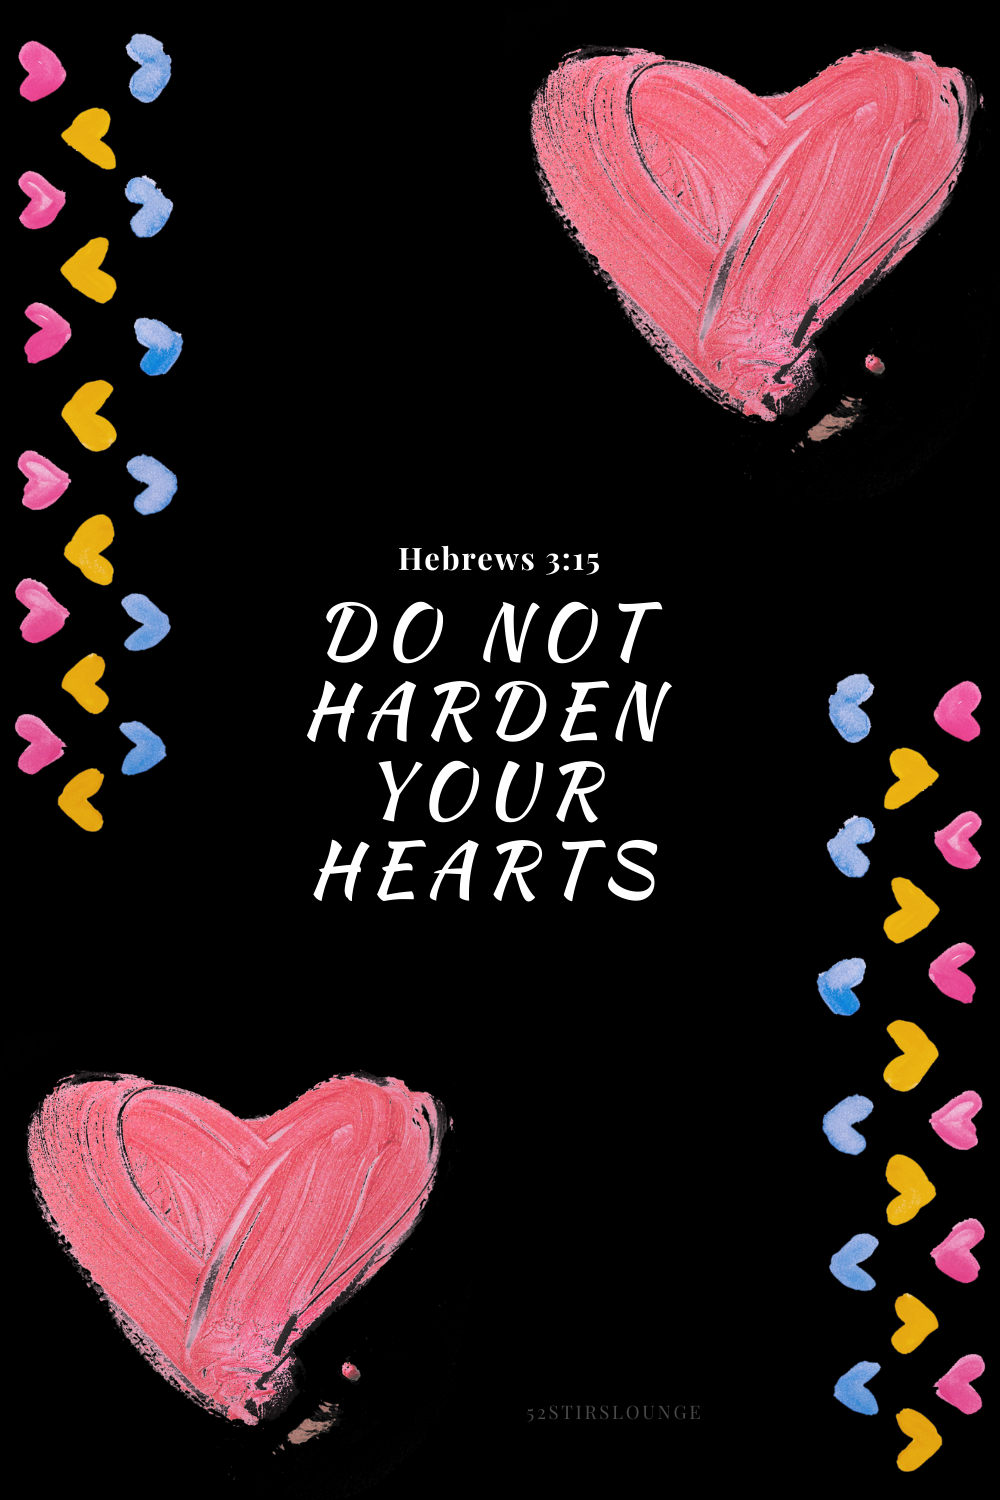 Do Not Harden Your Hearts - 52StirsLounge